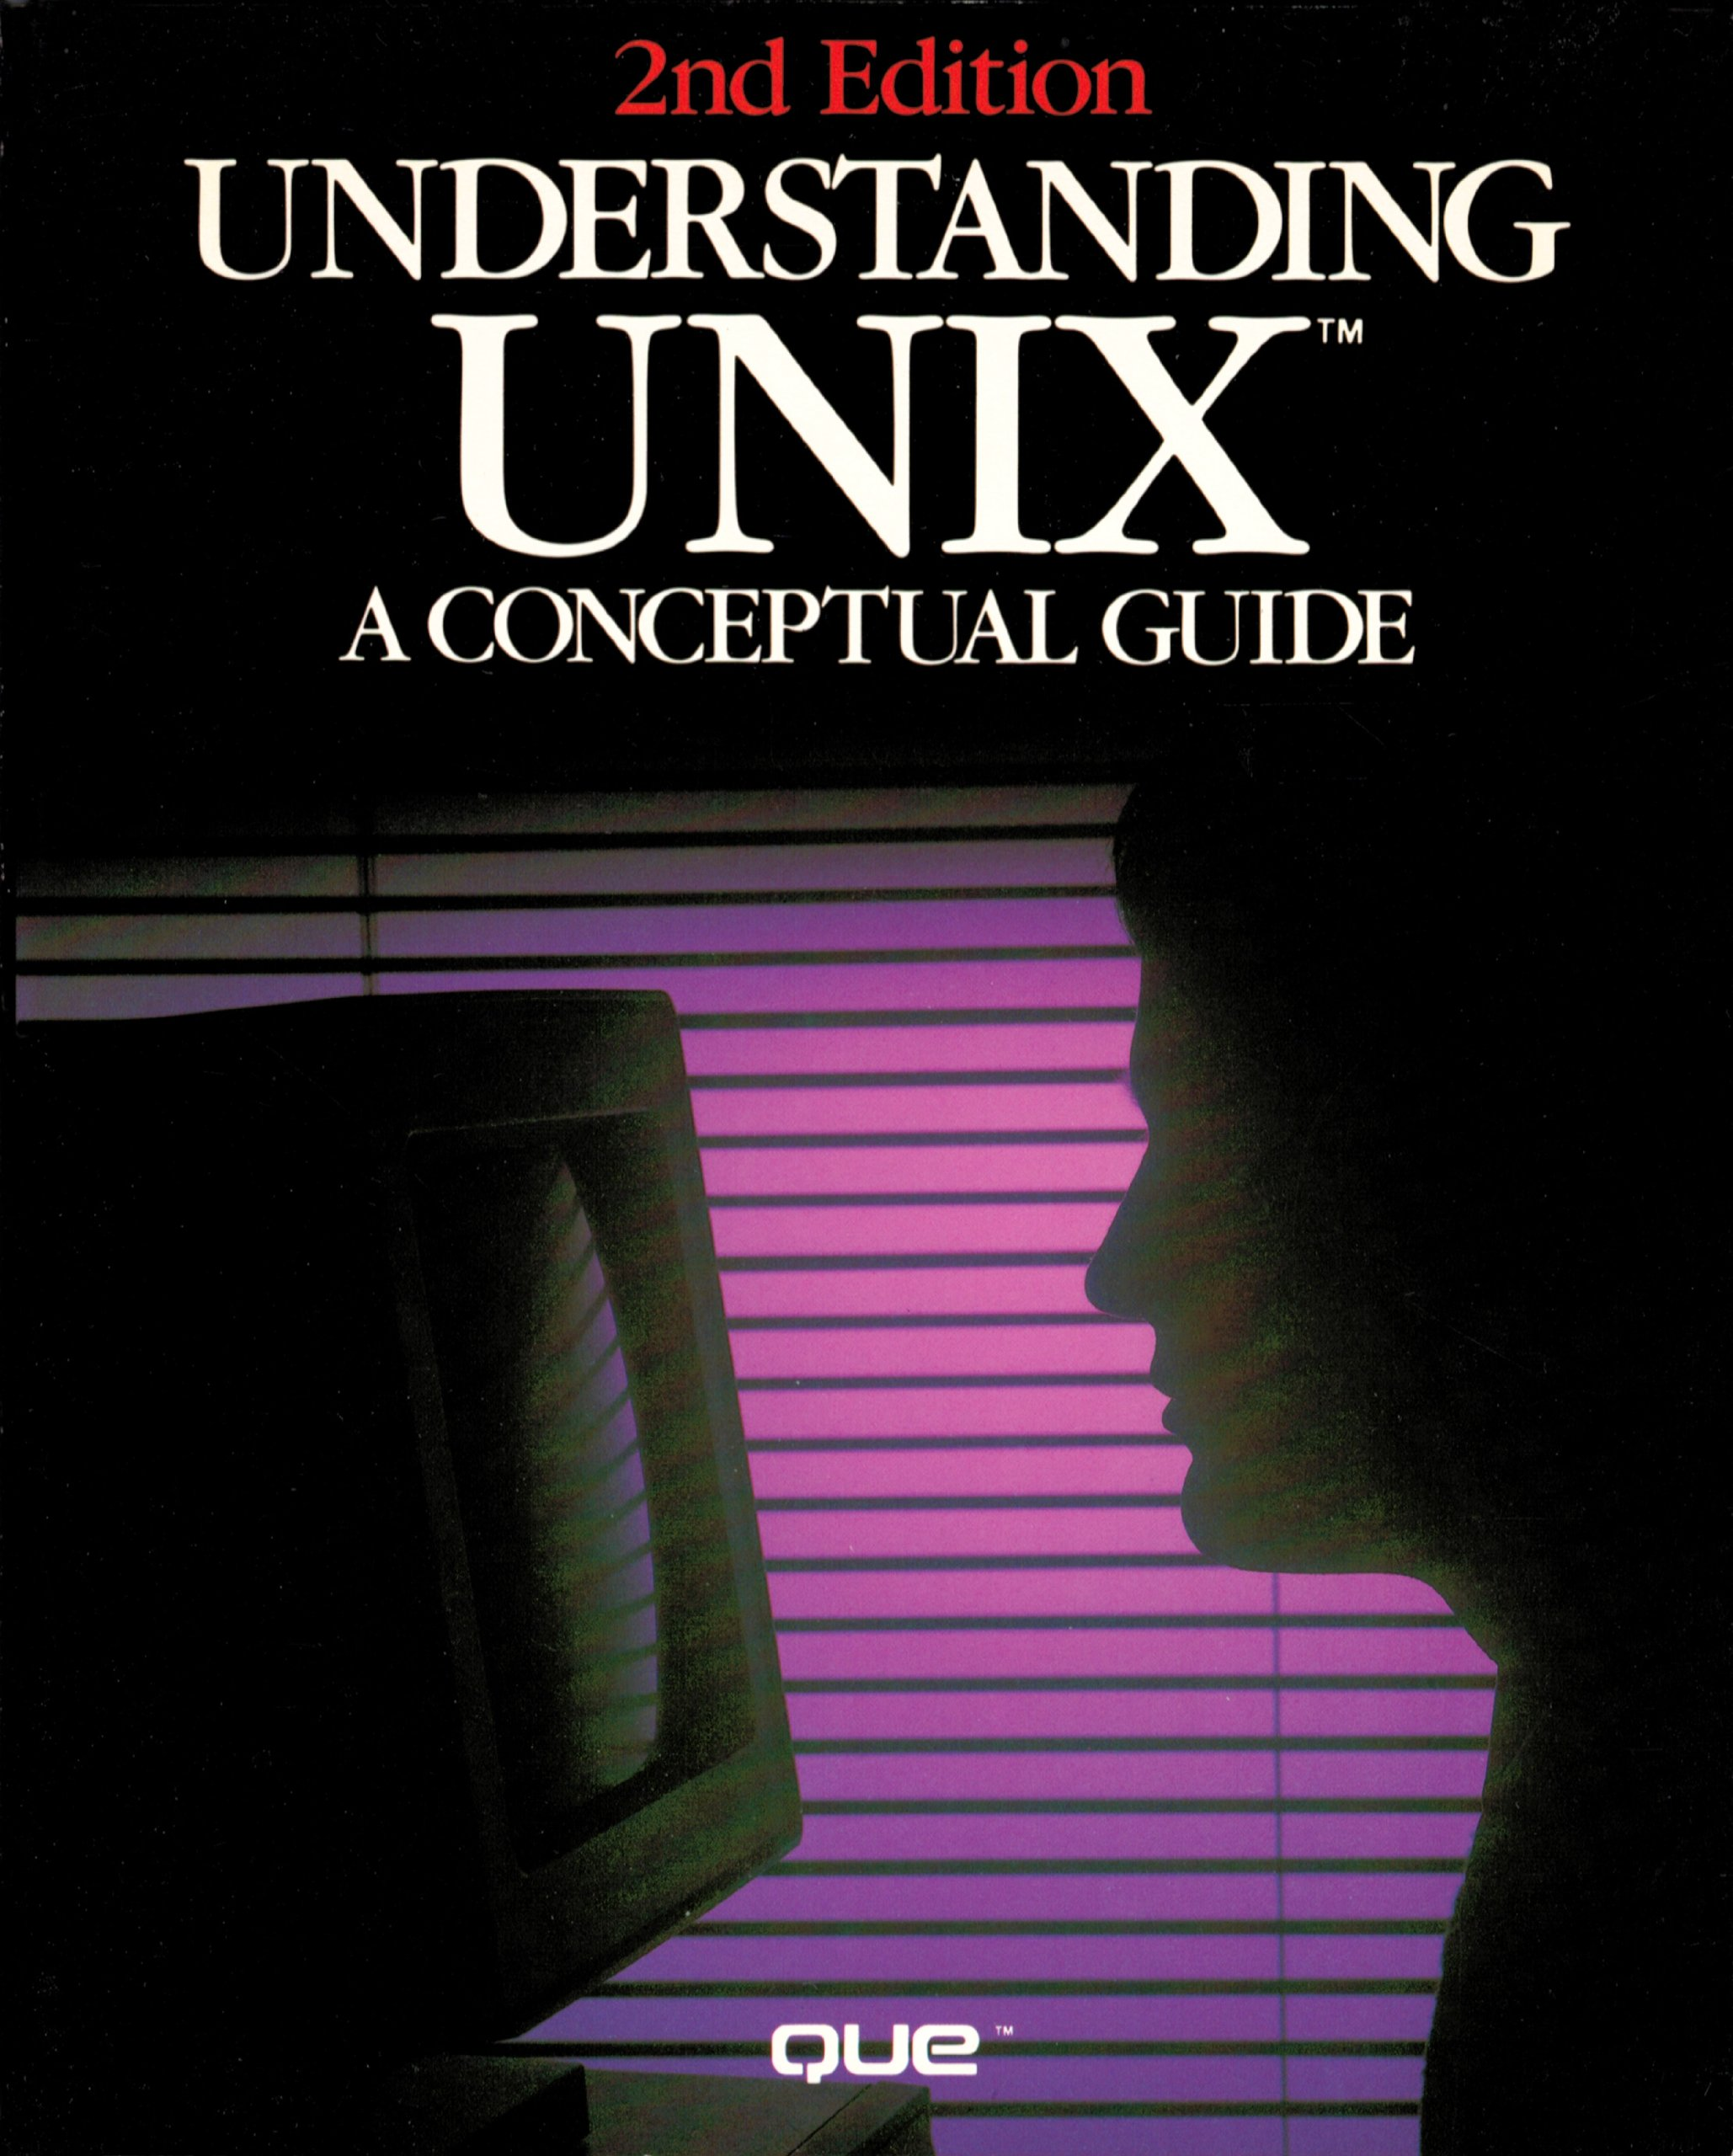 Understanding UNIX: A Conceptual Guide, 2nd Edition: James R. Groff, Paul  N. Weinberg: 9780880223430: Amazon.com: Books